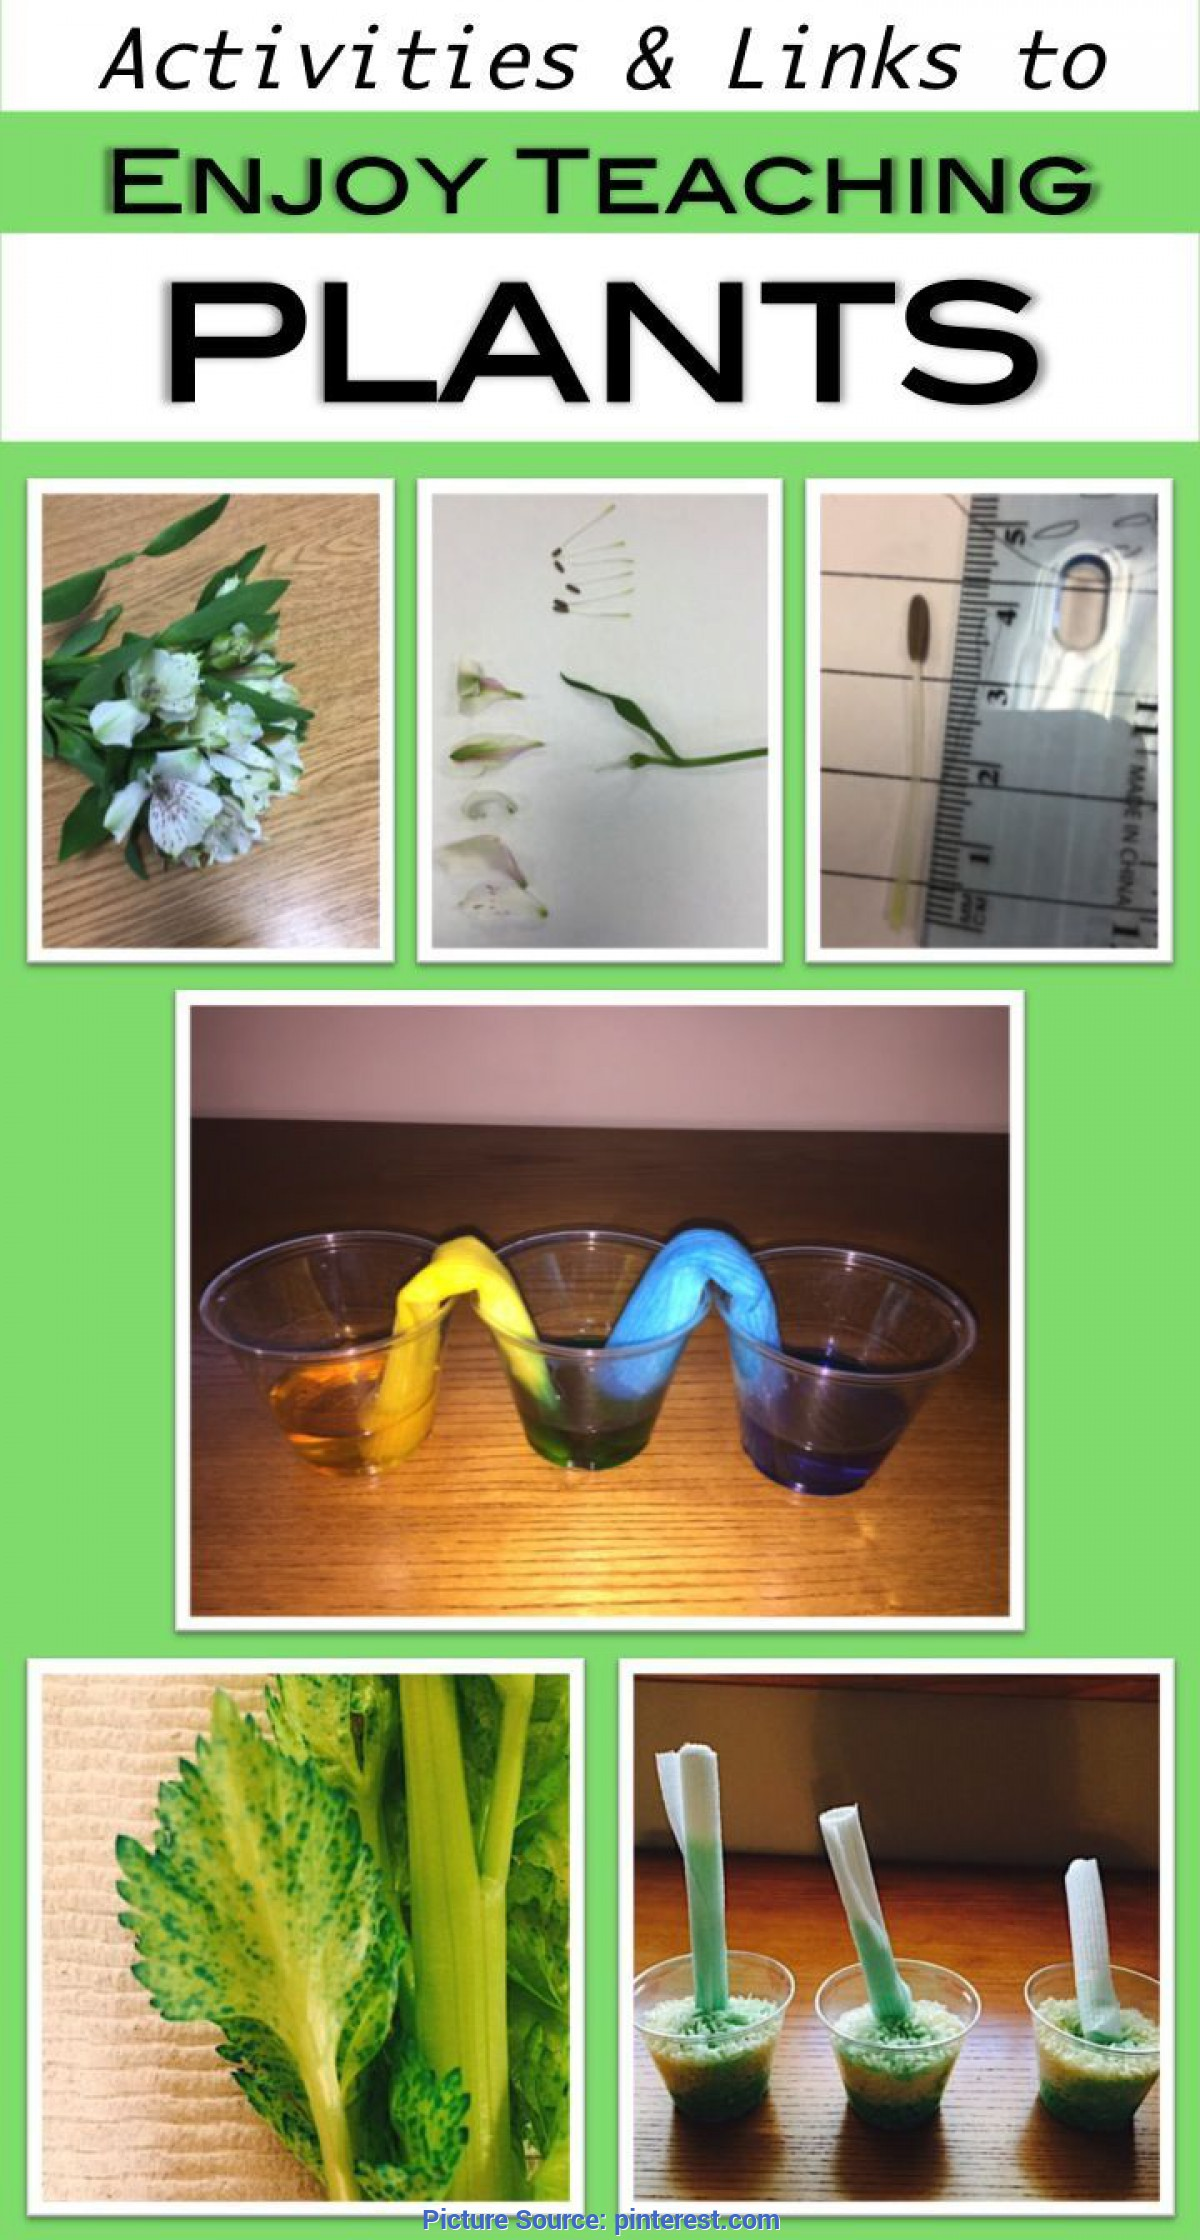 Useful Lesson Plan For Preschool On Plants Enjoy Teaching Plants With These Hands-On Activities, Video Link